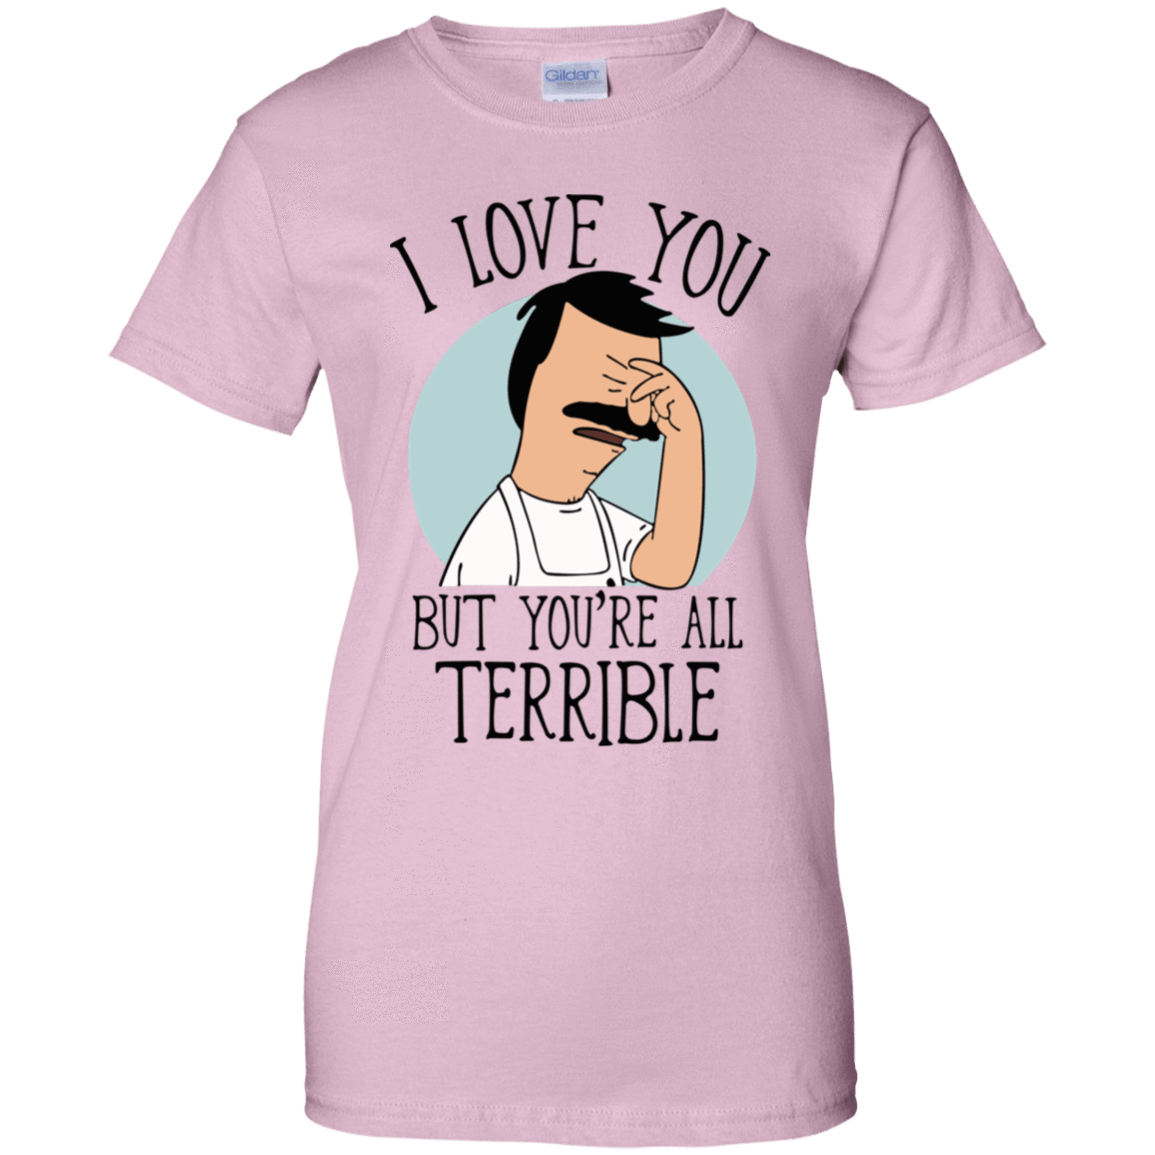 Bob's Burgers: I Love You But You're All Terrible 939-9258-72789301-44786 - Tee Ript